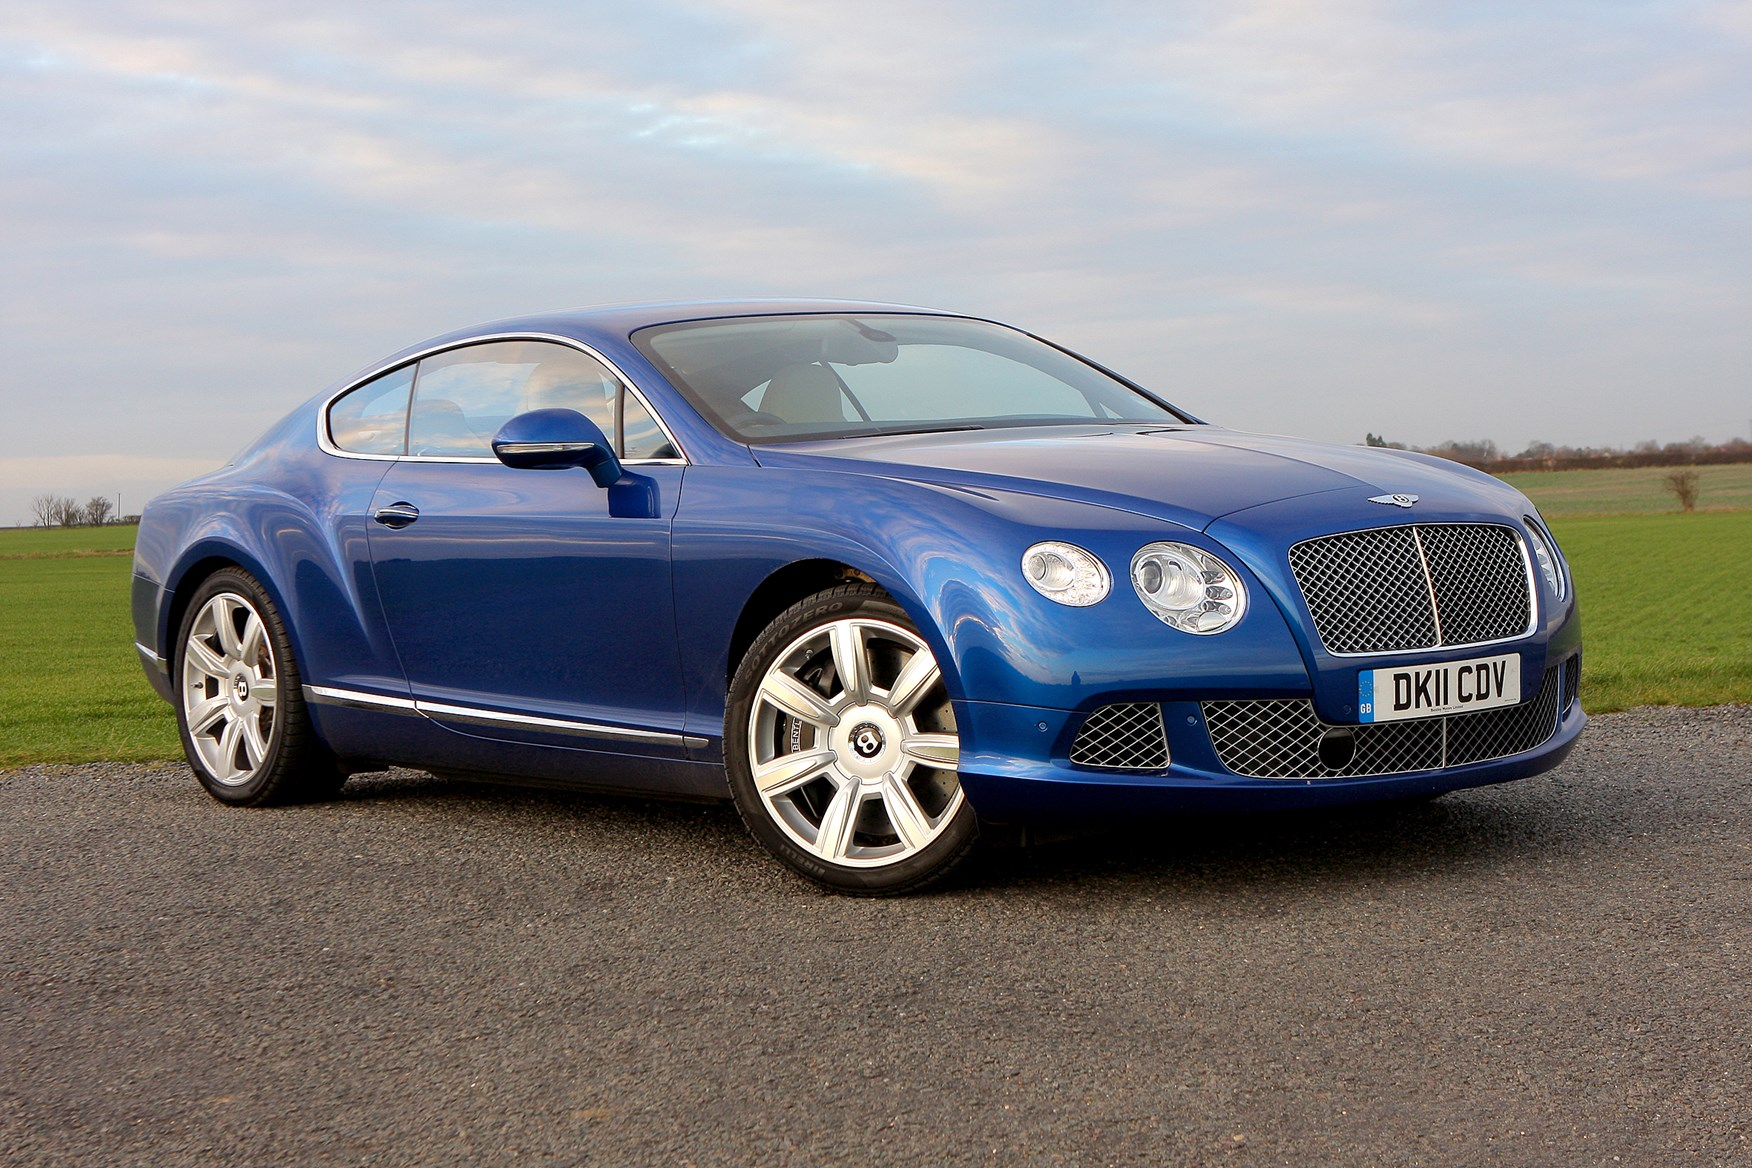 cost co a for much bentley sale in how used west malling convertible does local kent motors uk cars